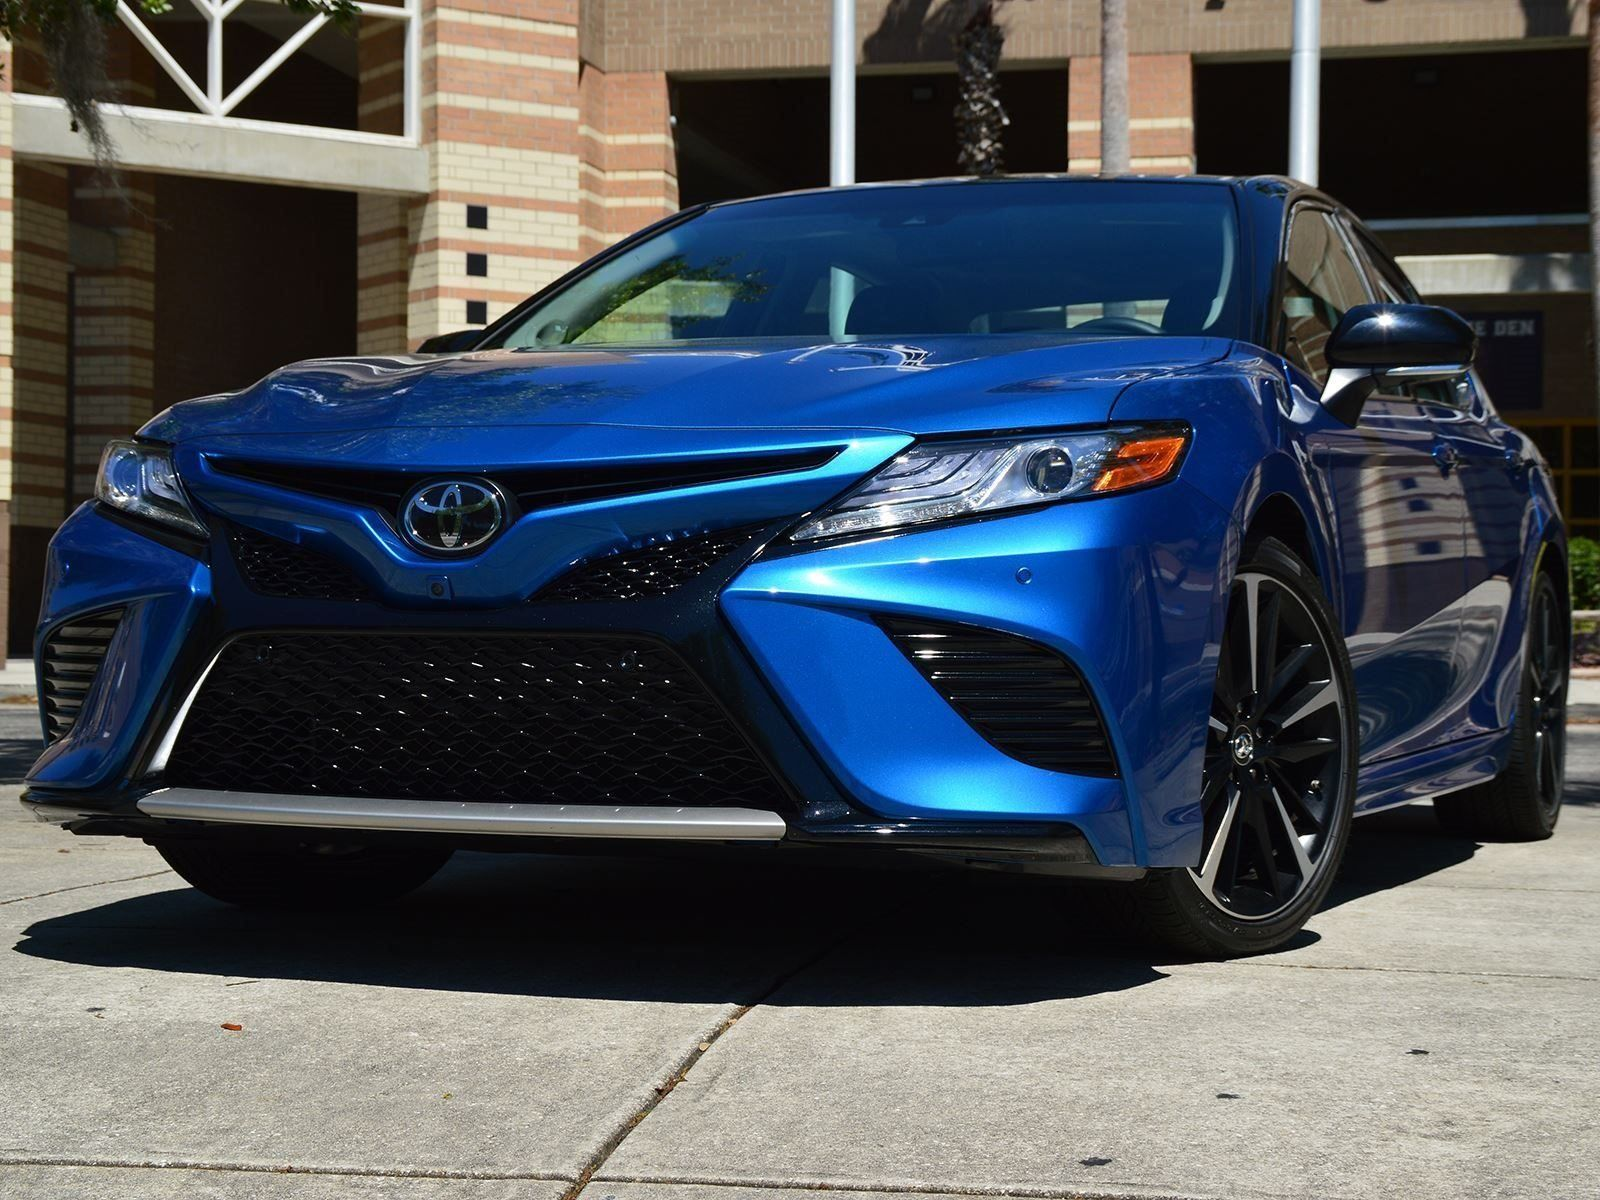 The Camry is a nice car, but how much will 35,000 buy you